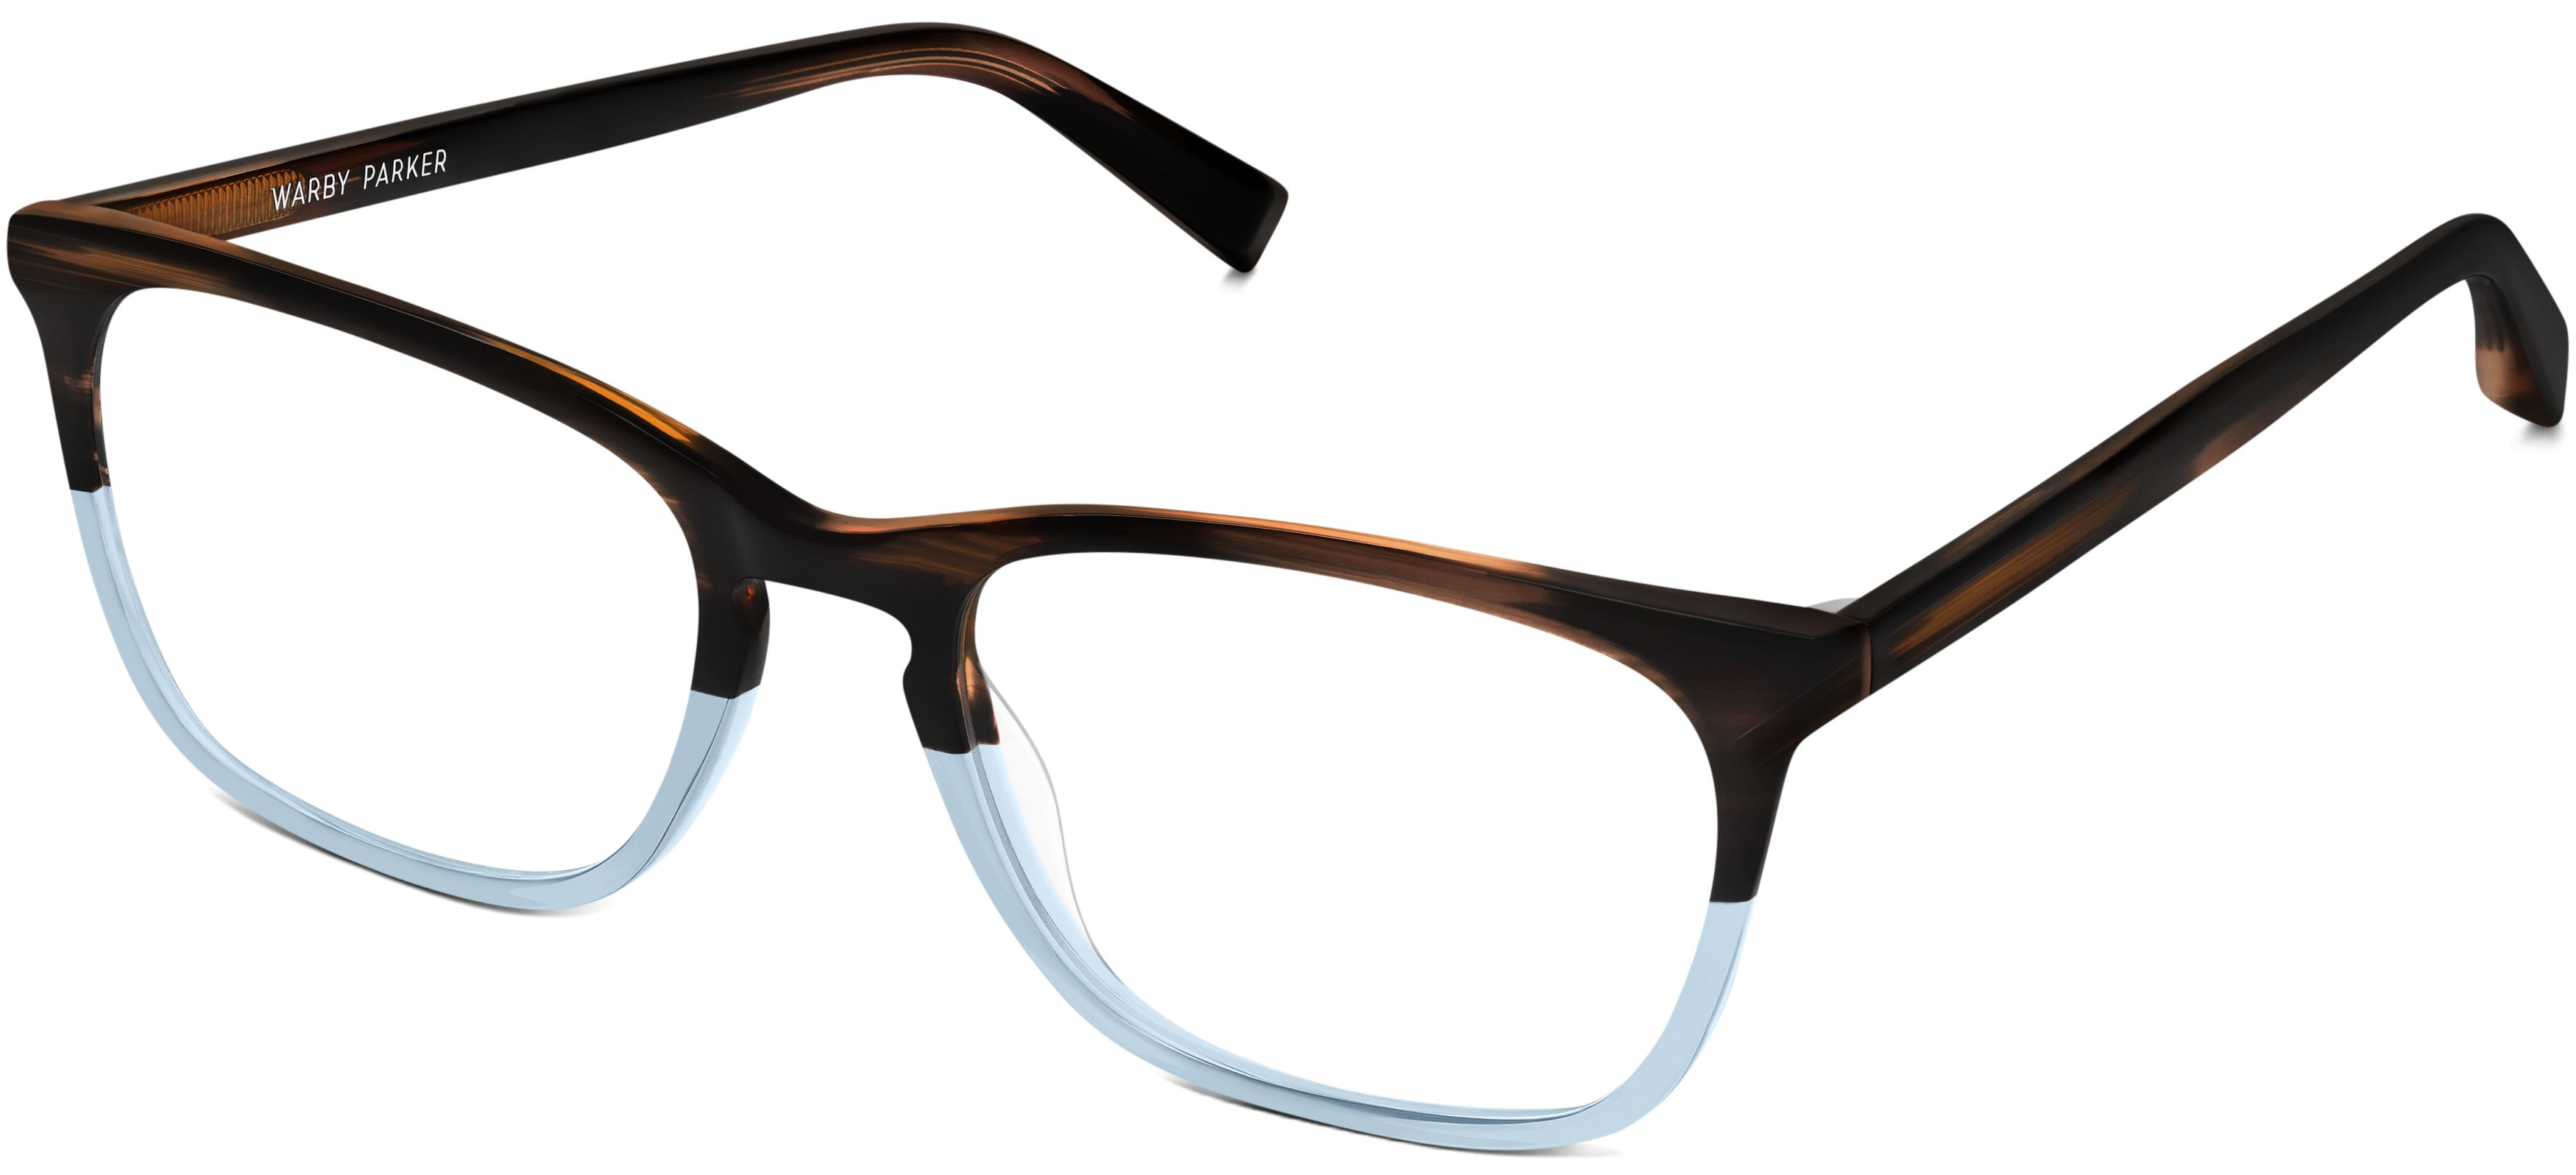 dcf85a1226 Welty Eyeglasses in Eastern Bluebird Fade for Women